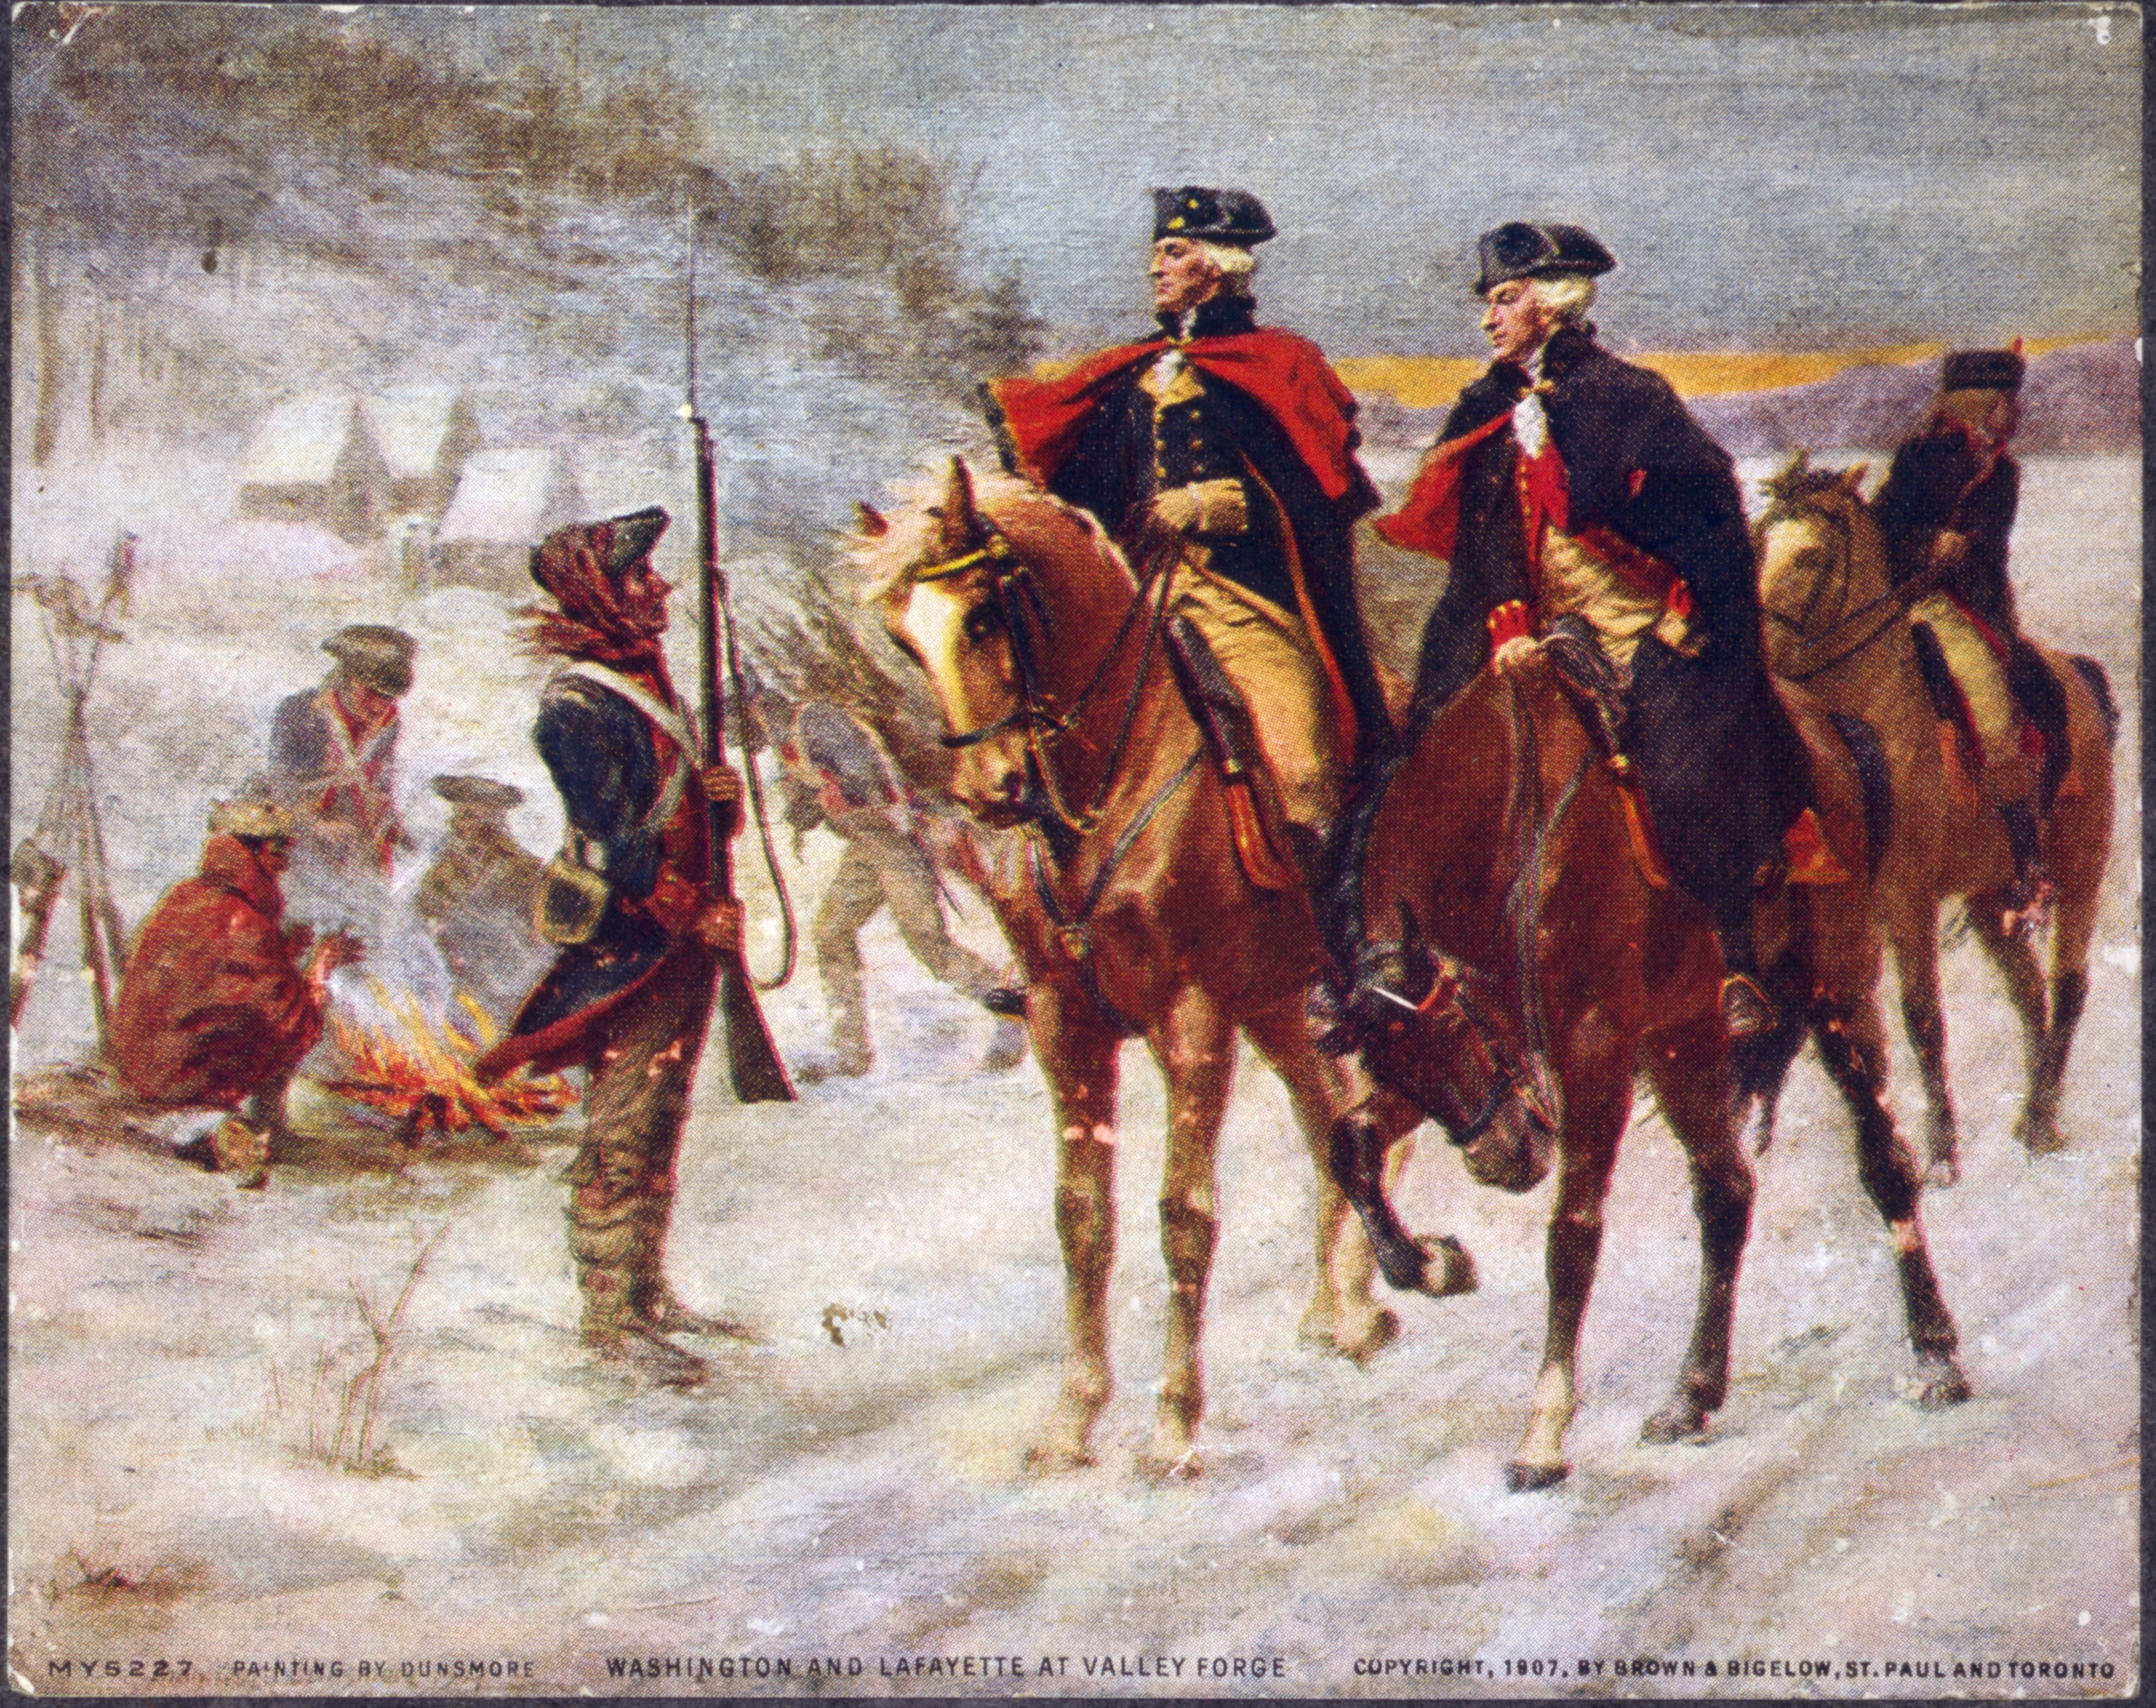 Washington and Lafayette at Valley Forge. A 1907 painting by John Ward Dunsmore.